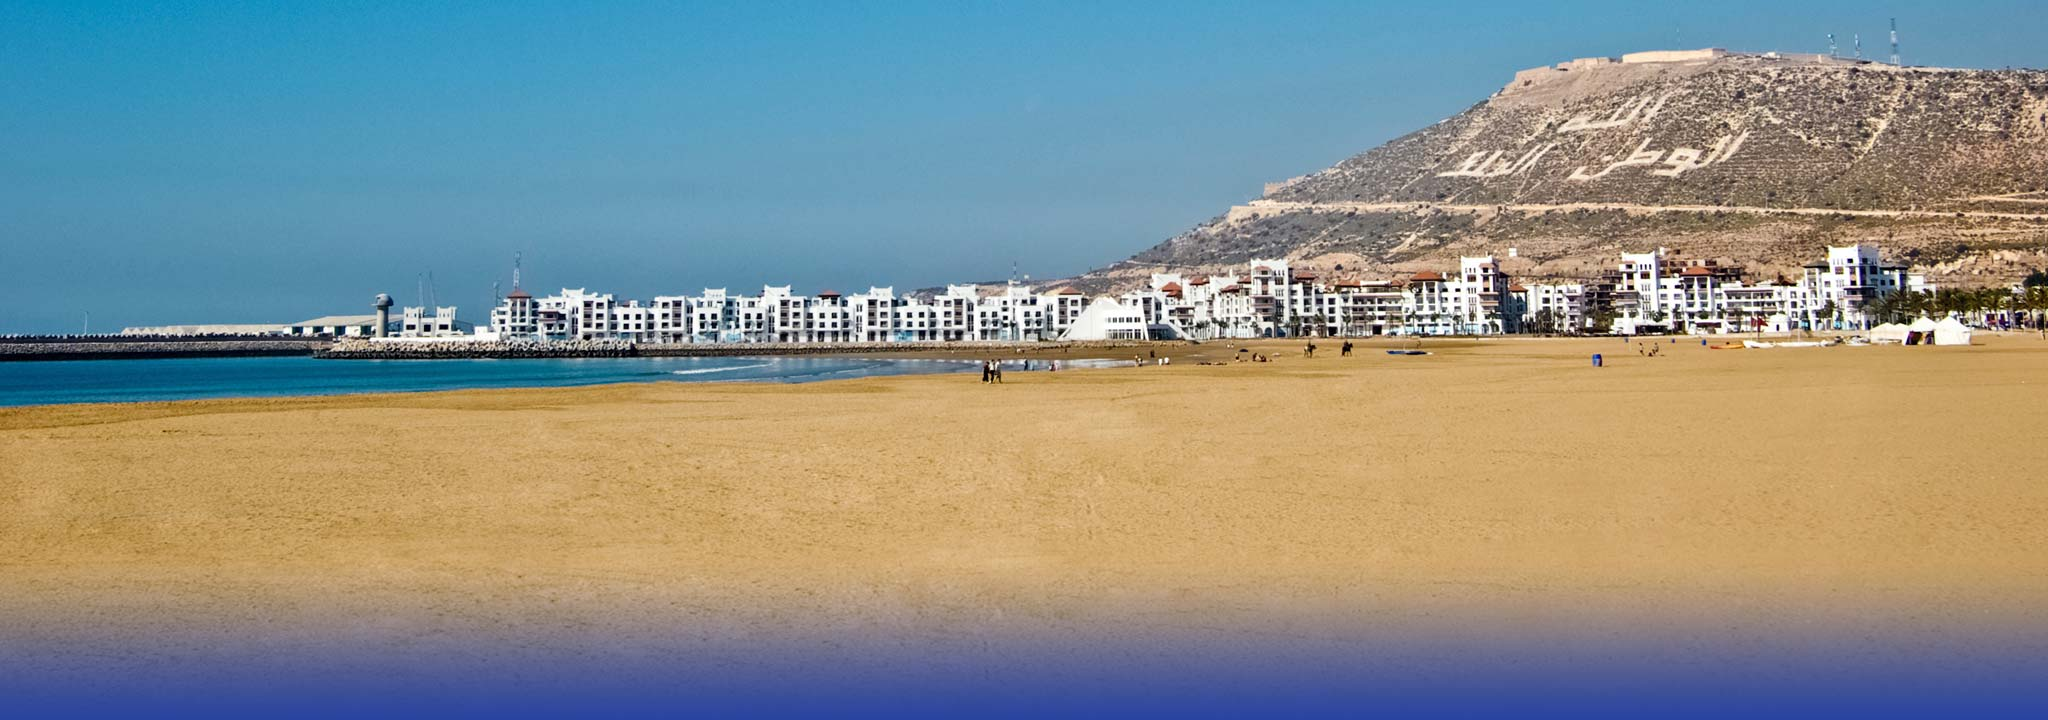 Agadir - Enjoy the sun 330 days